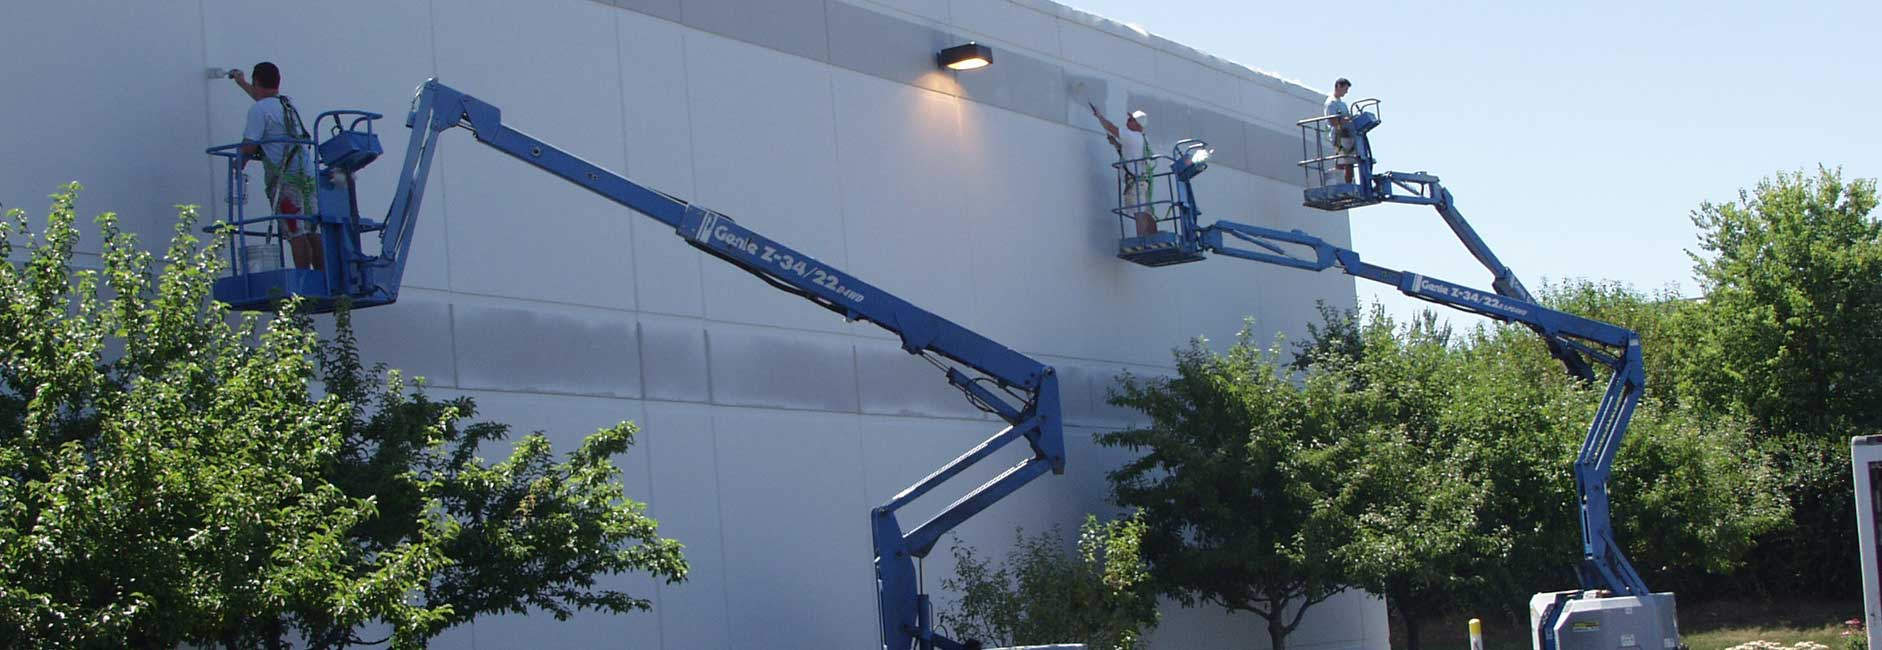 Commercial Painters On Lift